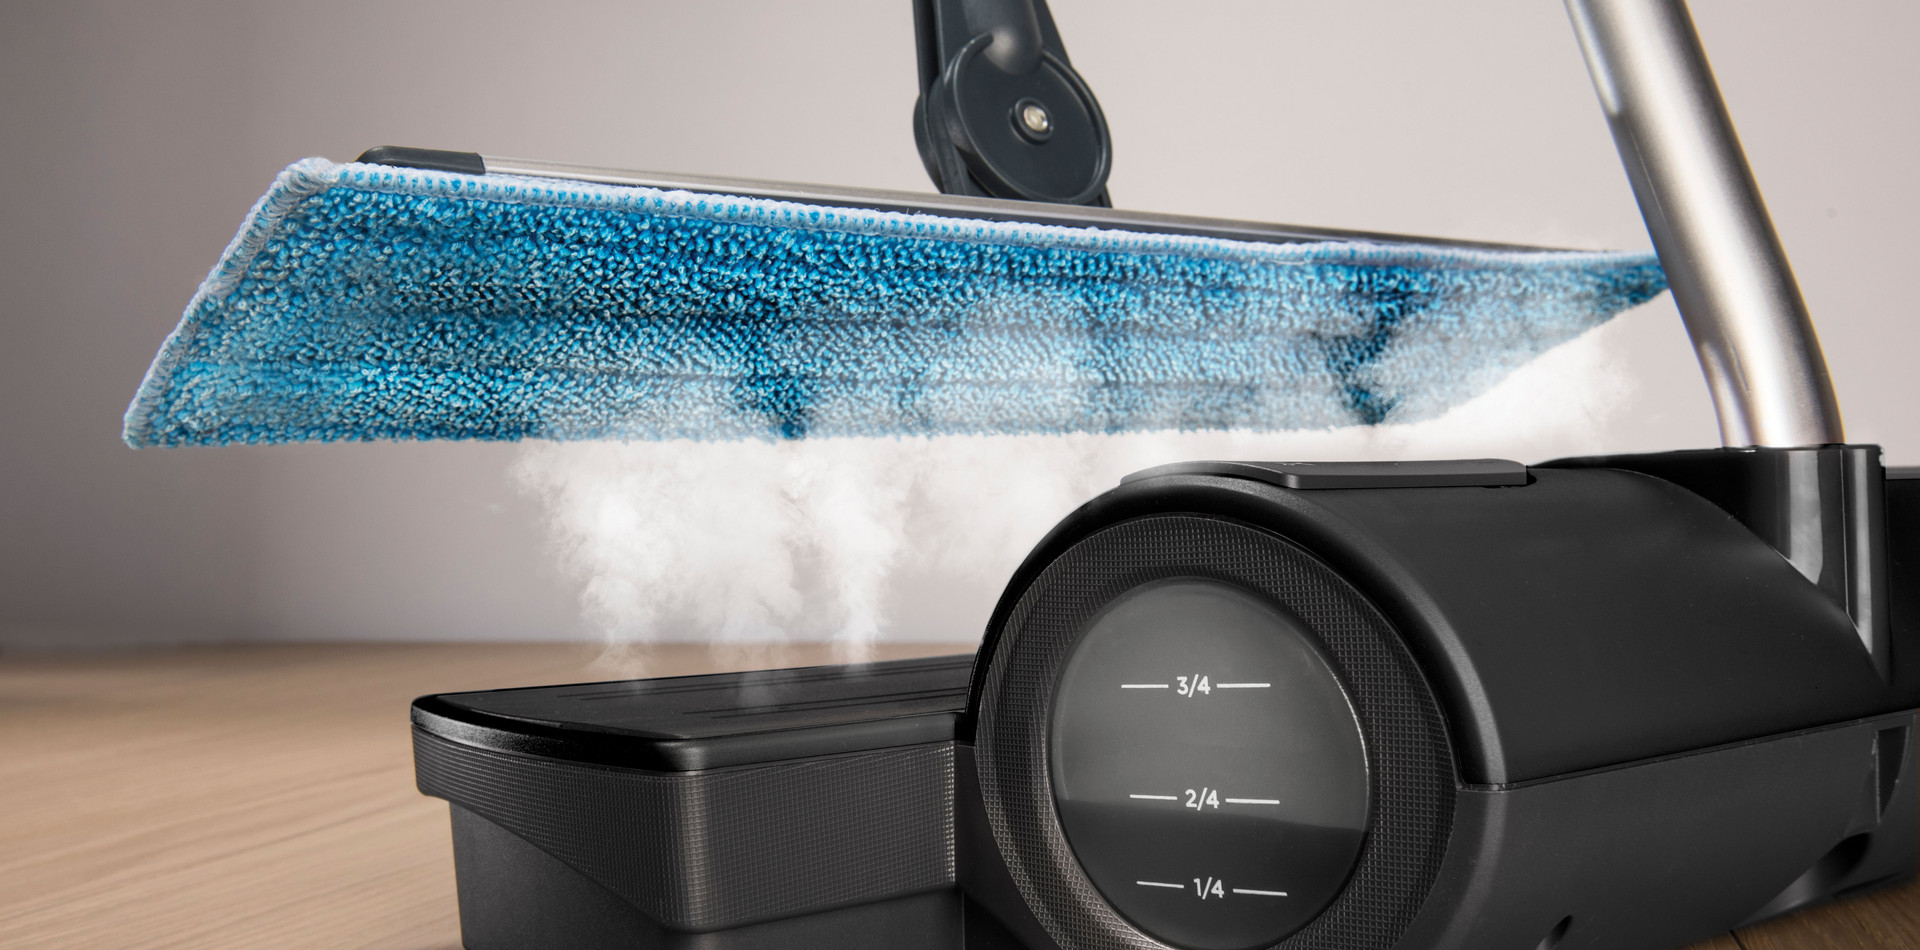 Moppy Black Premium - Sanitizes using natural high temperature steam without chemicals